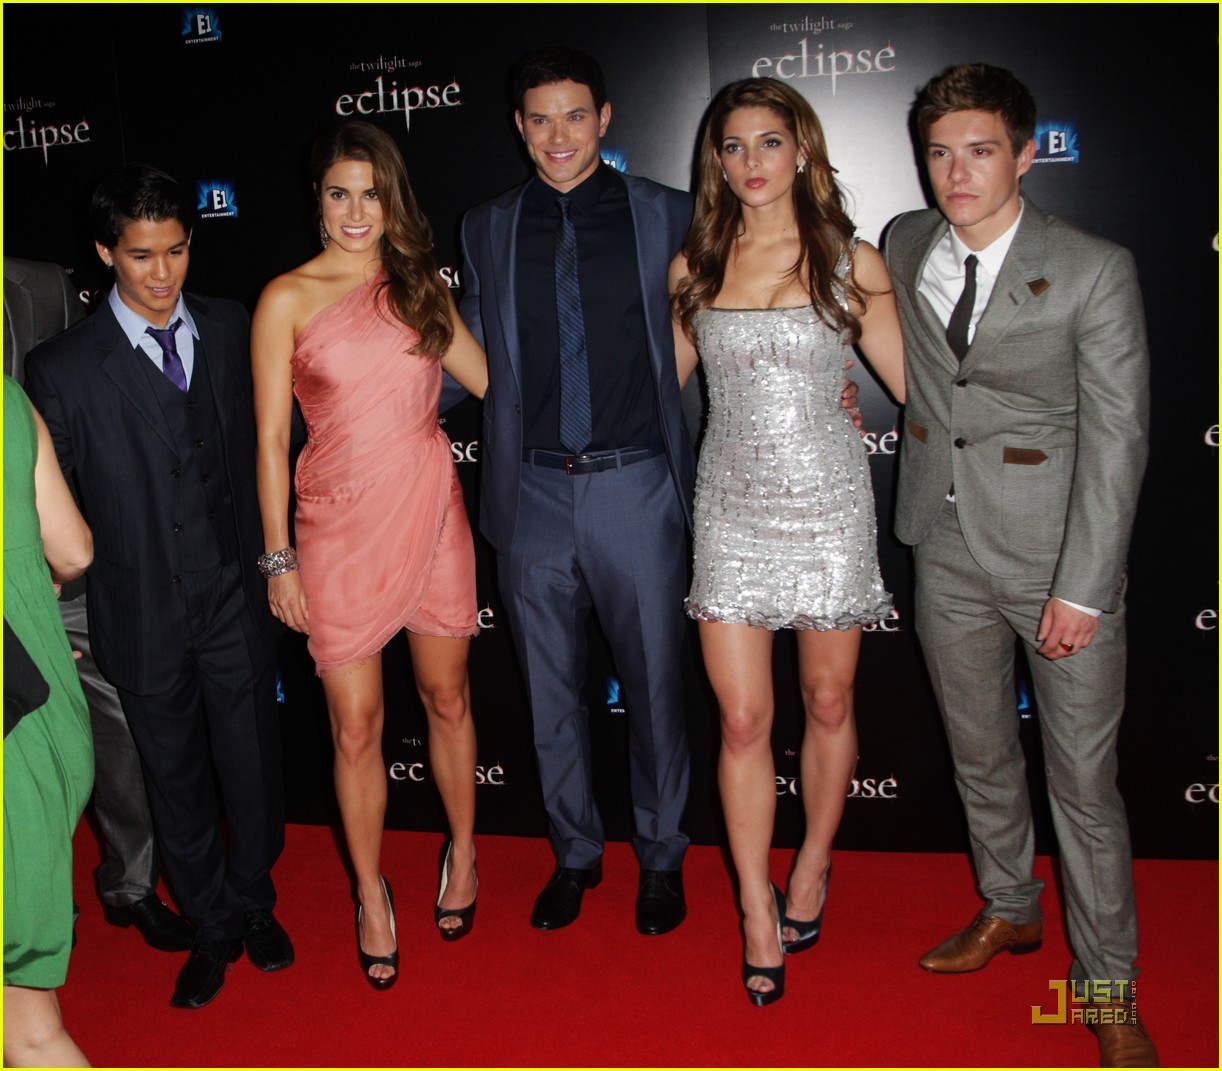 twilight cast eclipse london premiere 14   Copy